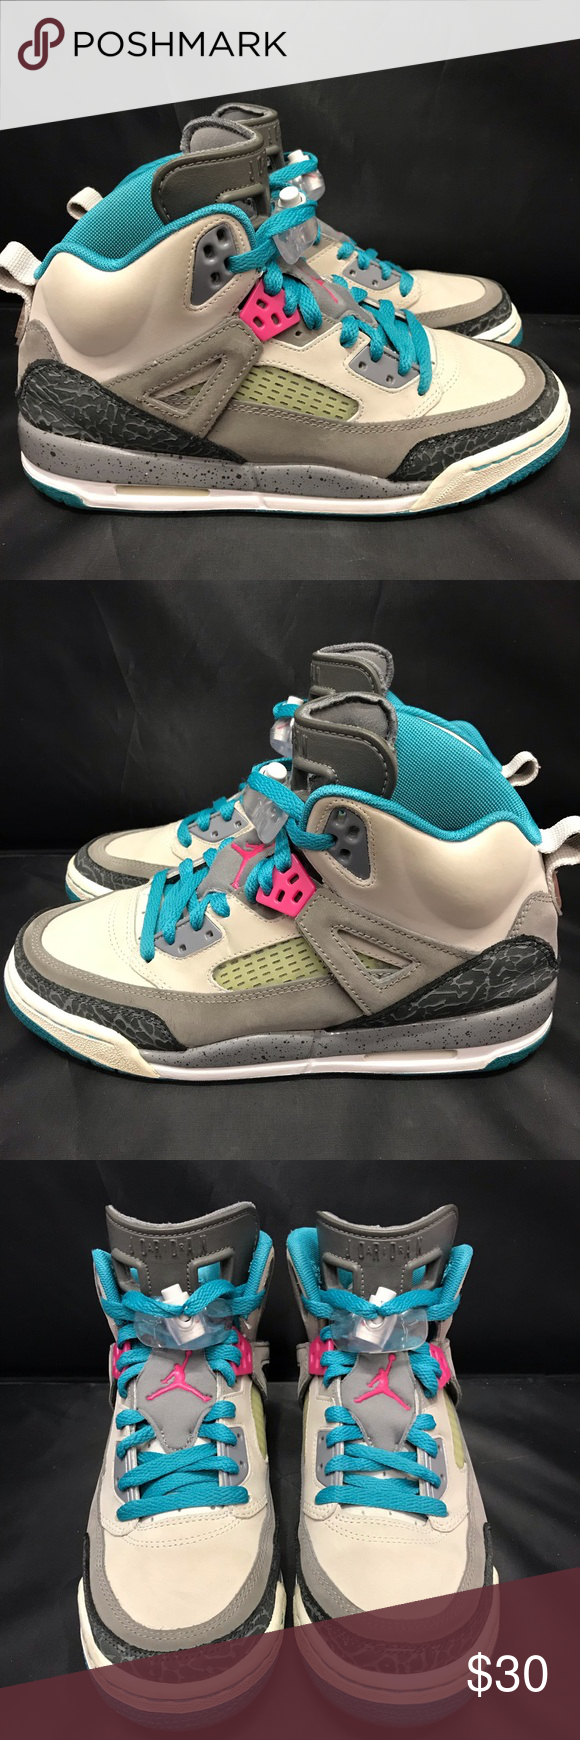 best website 41b6b 9a271 Nike Air Jordan Spizike GS Brooklyn Shoes Size 6Y Nice pair of Youth Nike  Air Jordan